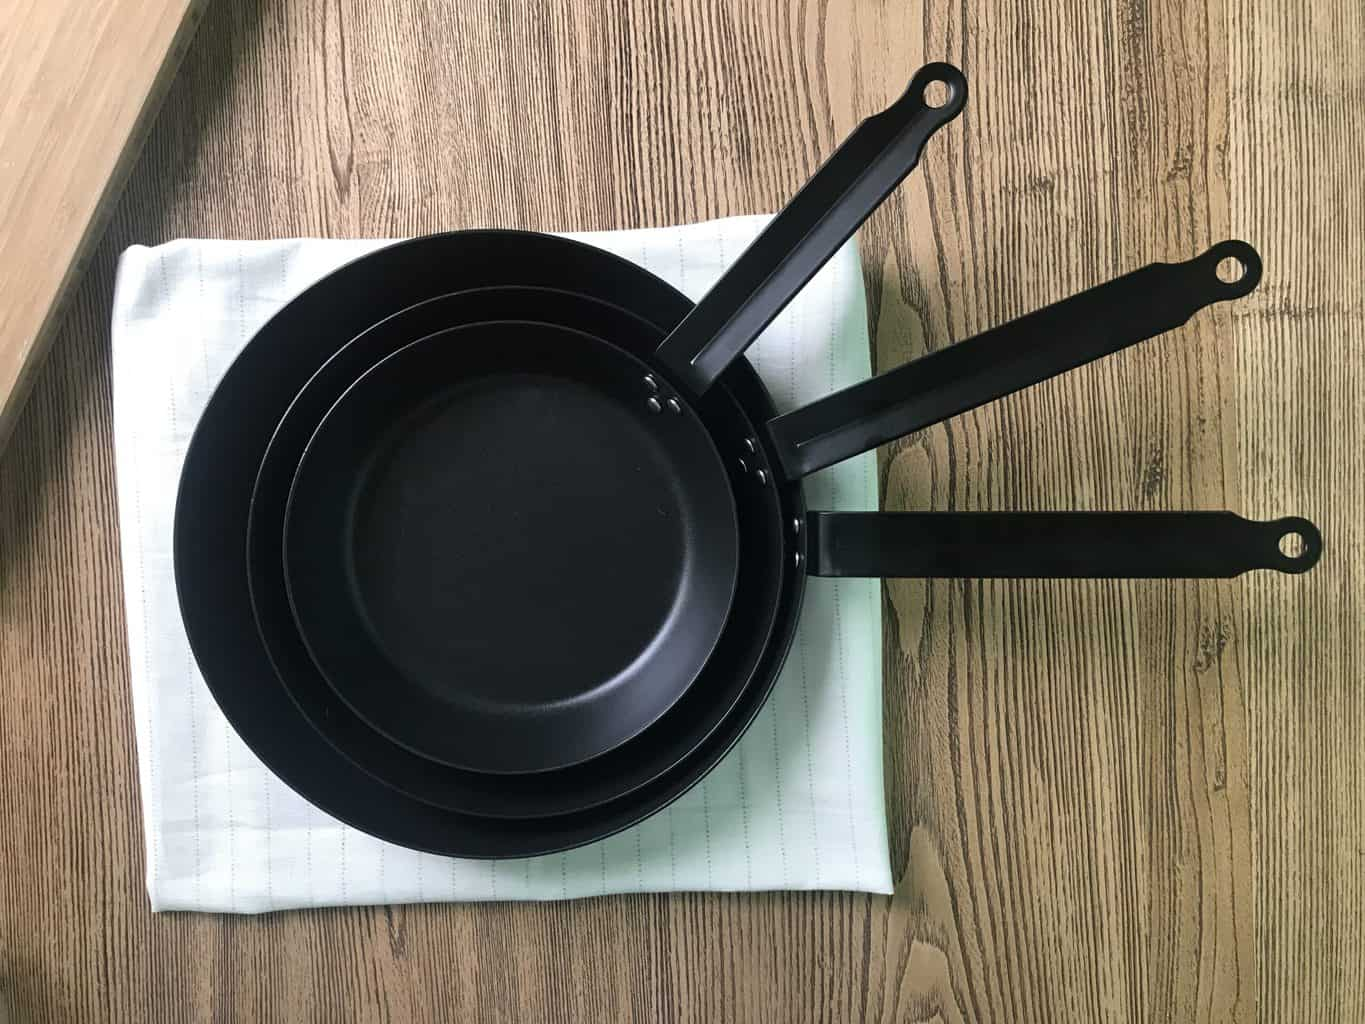 A set of iron casted pans